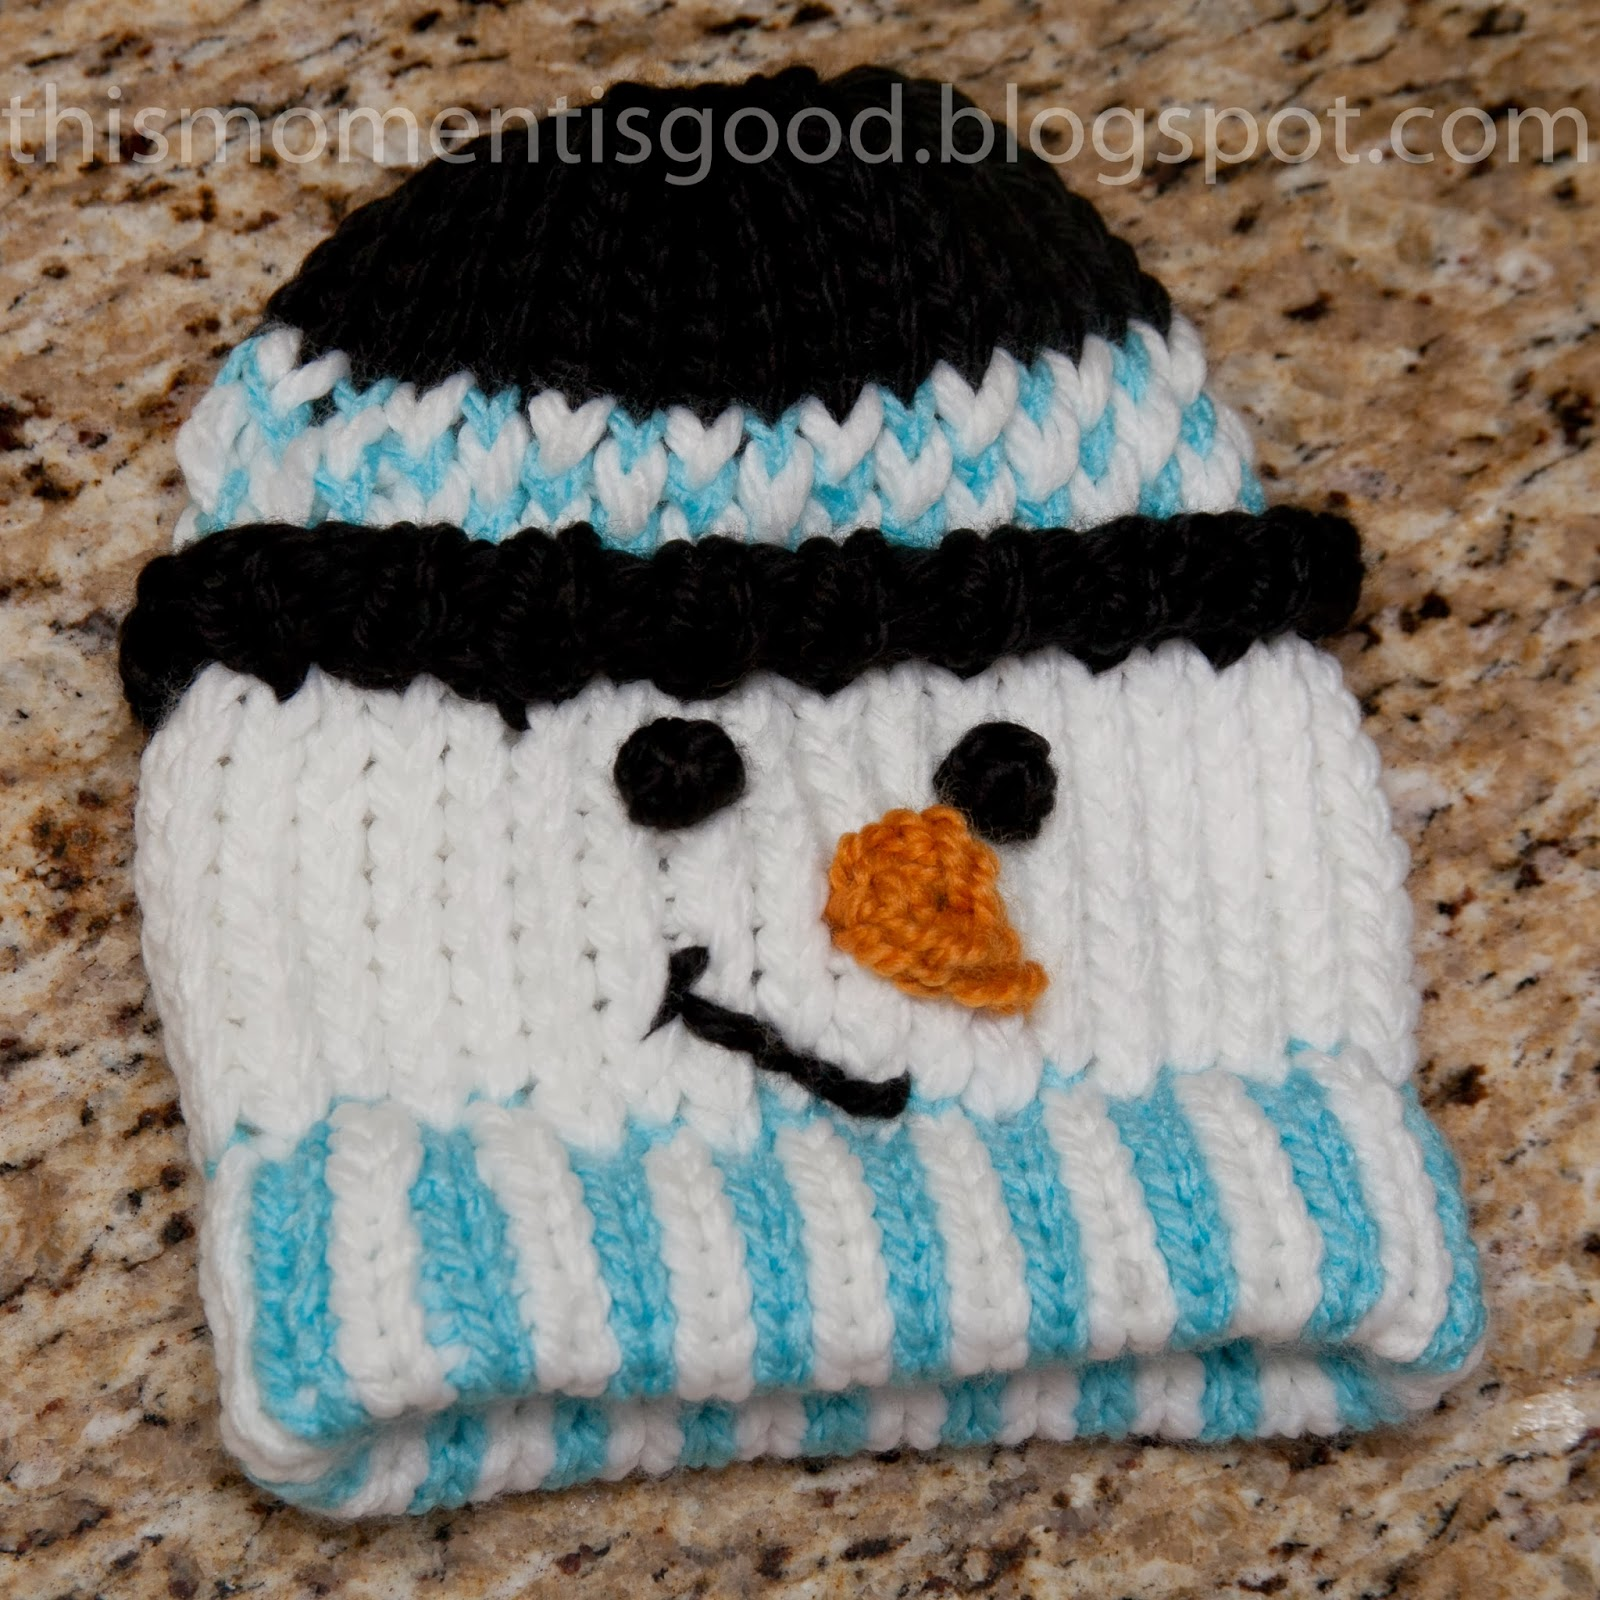 Snowman Hat Knitting Pattern : Loom Knitting by This Moment is Good!: LOOM KNIT SNOWMAN HAT